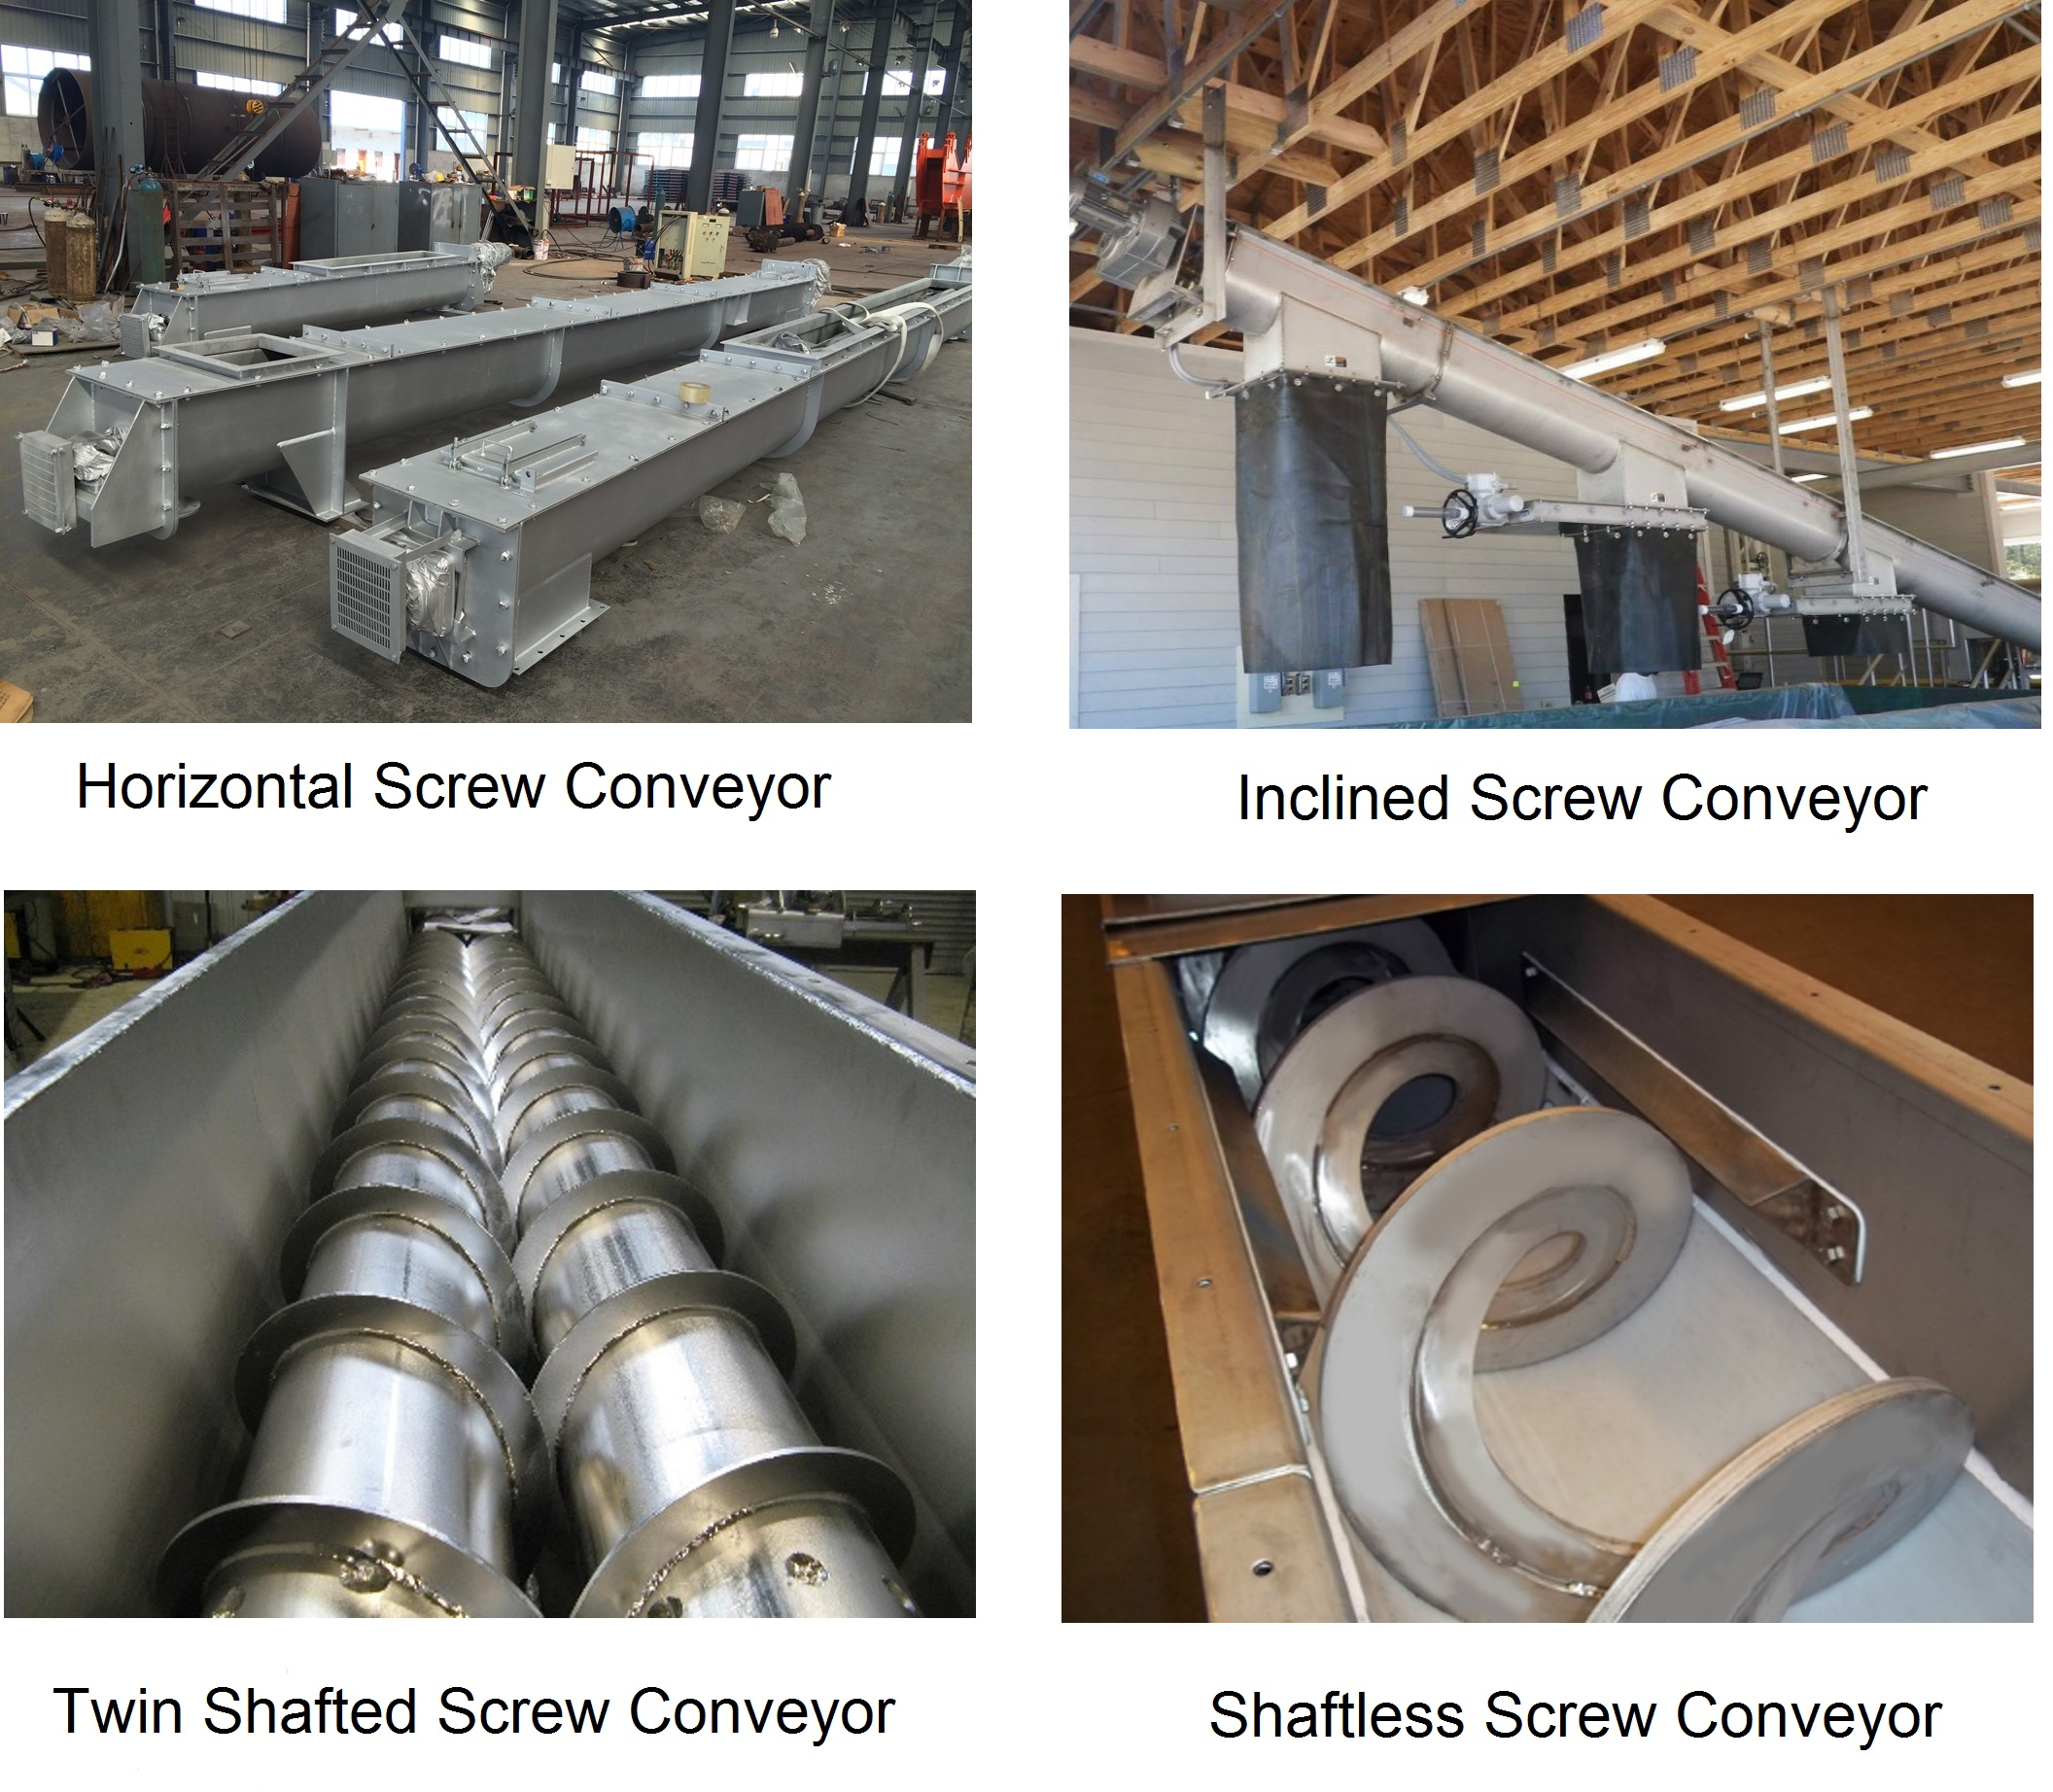 Four types of Screw Conveyors